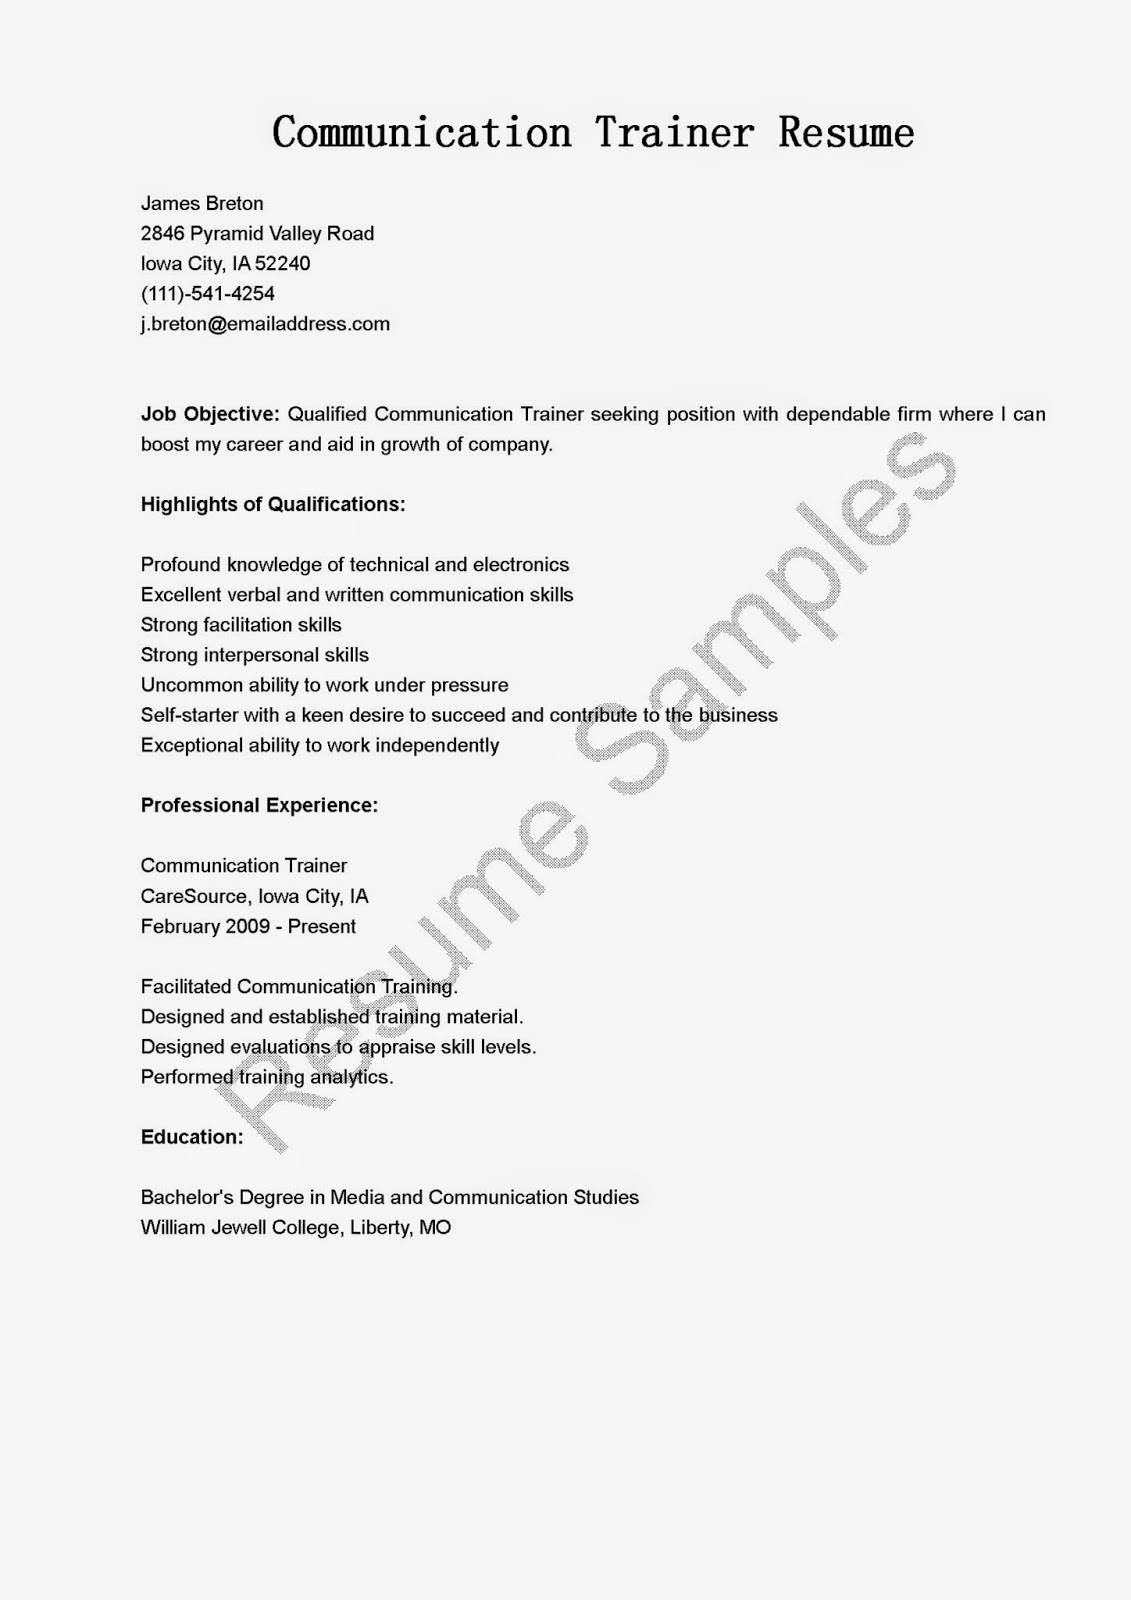 What To Write Under Communication On A Resume Resume Samples Communication Trainer Resume Sample